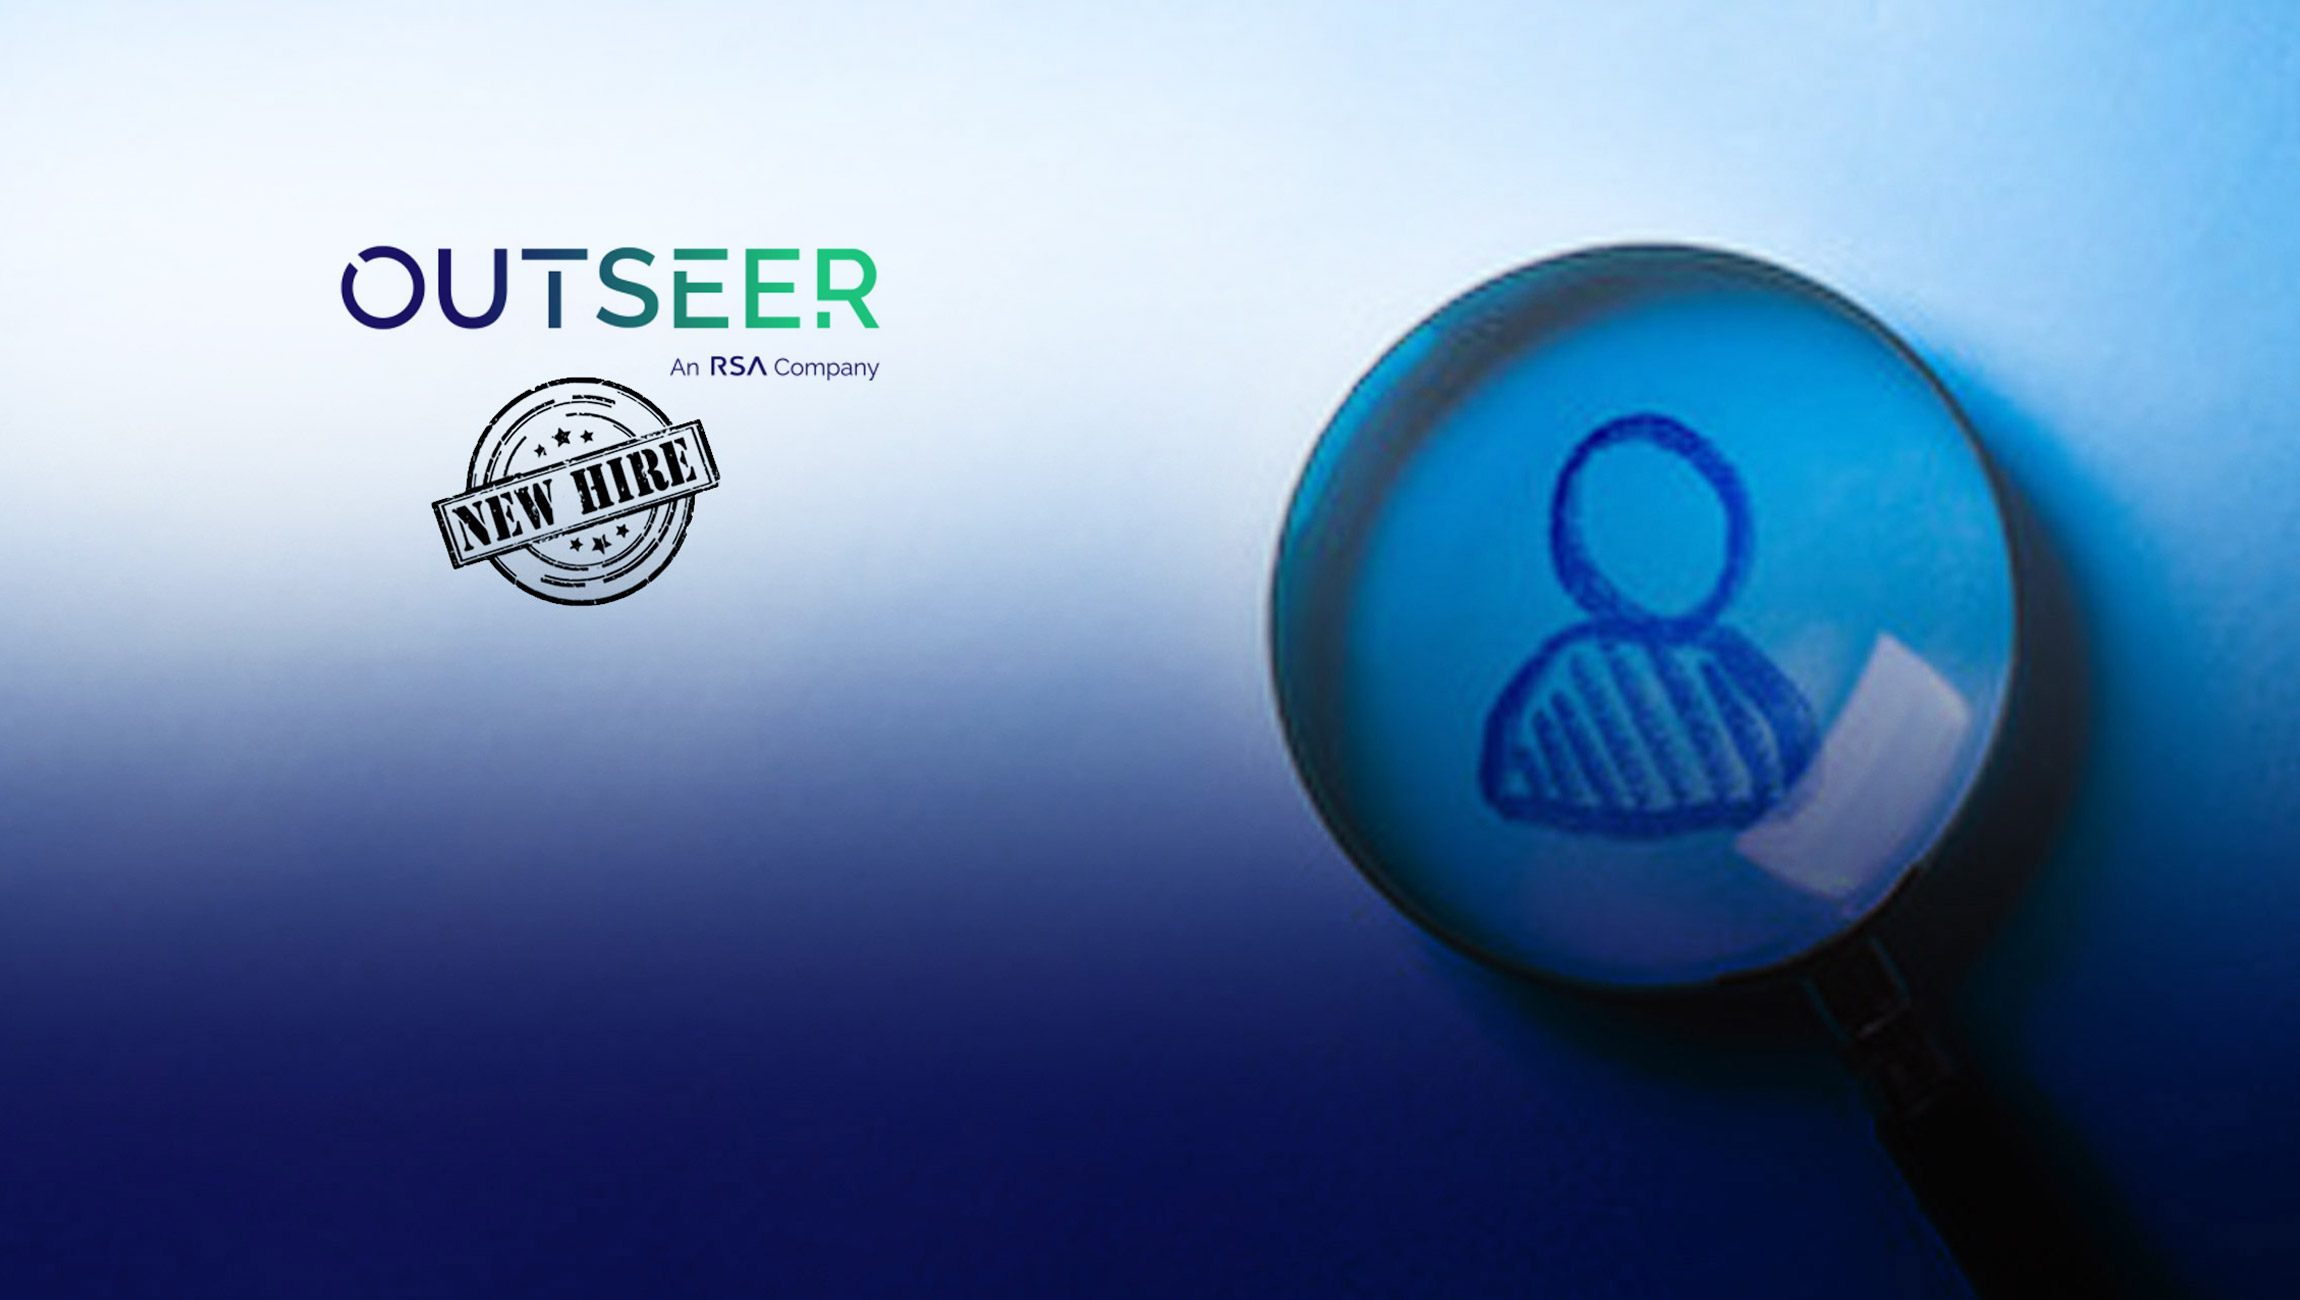 Outseer Appoints Rick Froehlich as Chief Revenue Officer